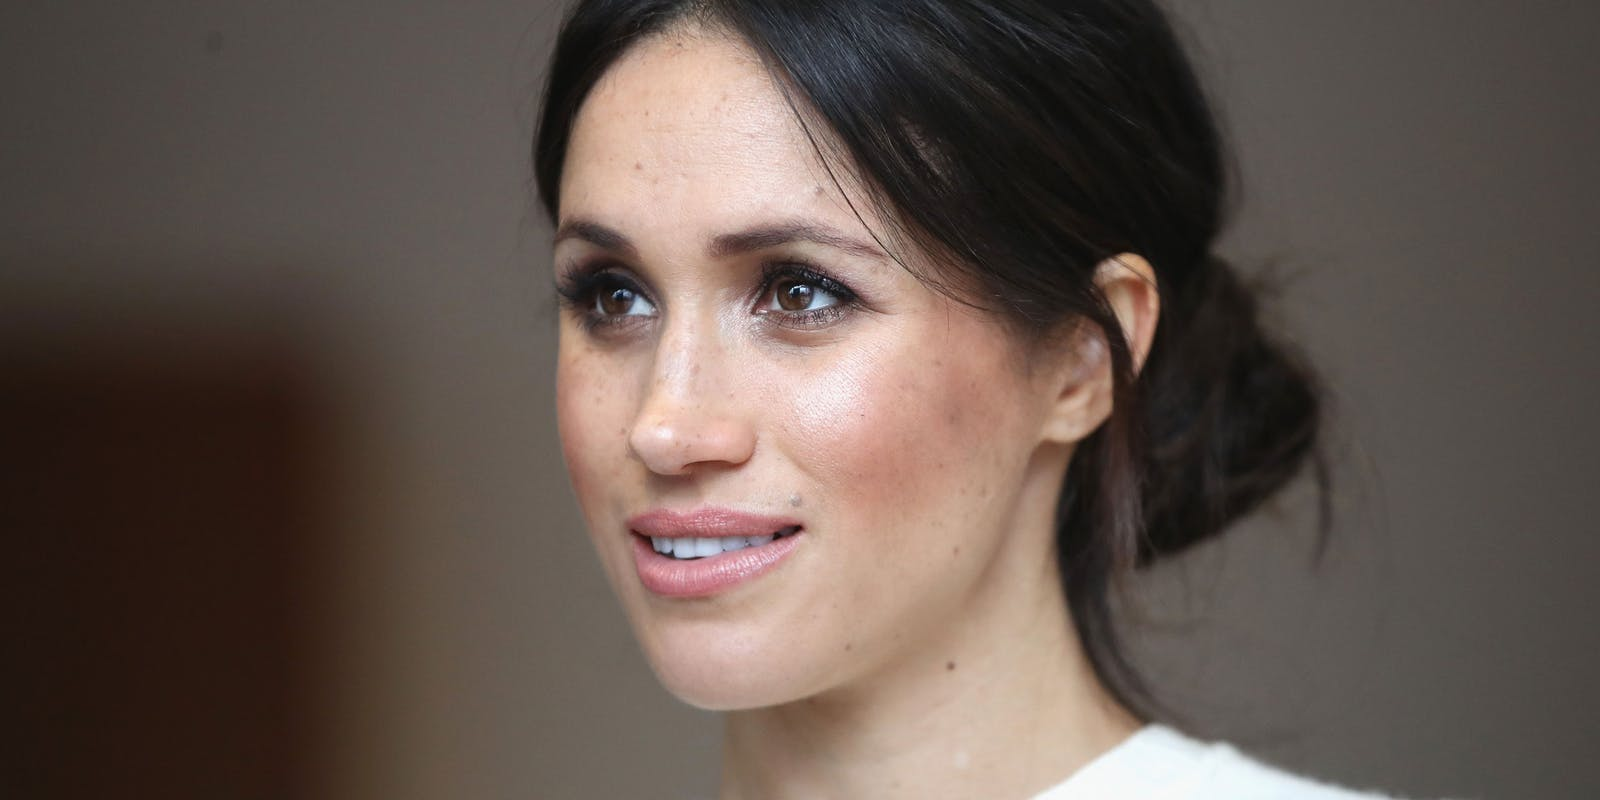 Meghan Markle's Pot Farming Nephew Gets His Own Reality Show On MTV